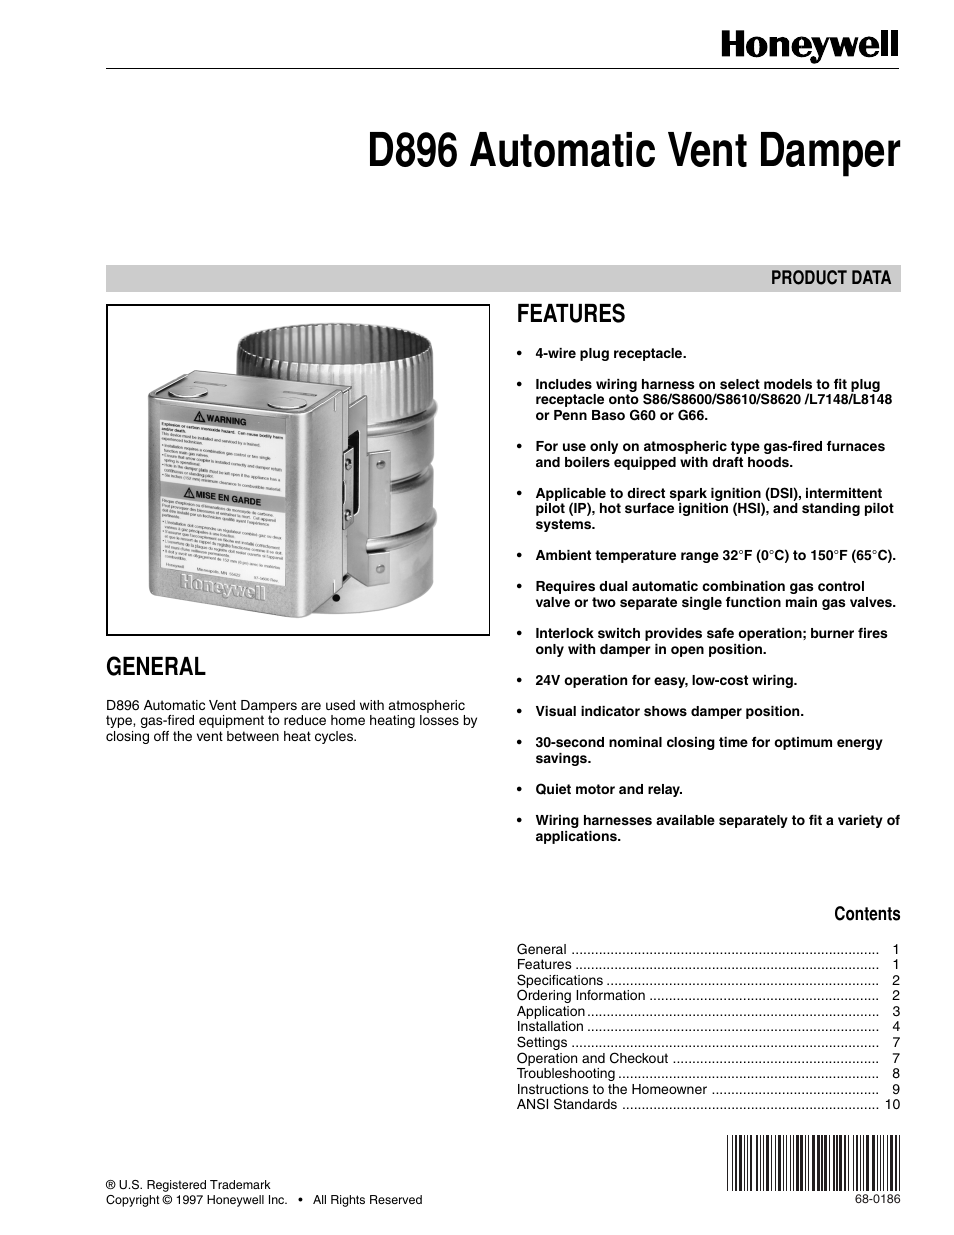 Vent Damper Wiring Diagram Library Ruud Furnace 90 21283 Honeywell Automatic D896 User Manual 12 Pages